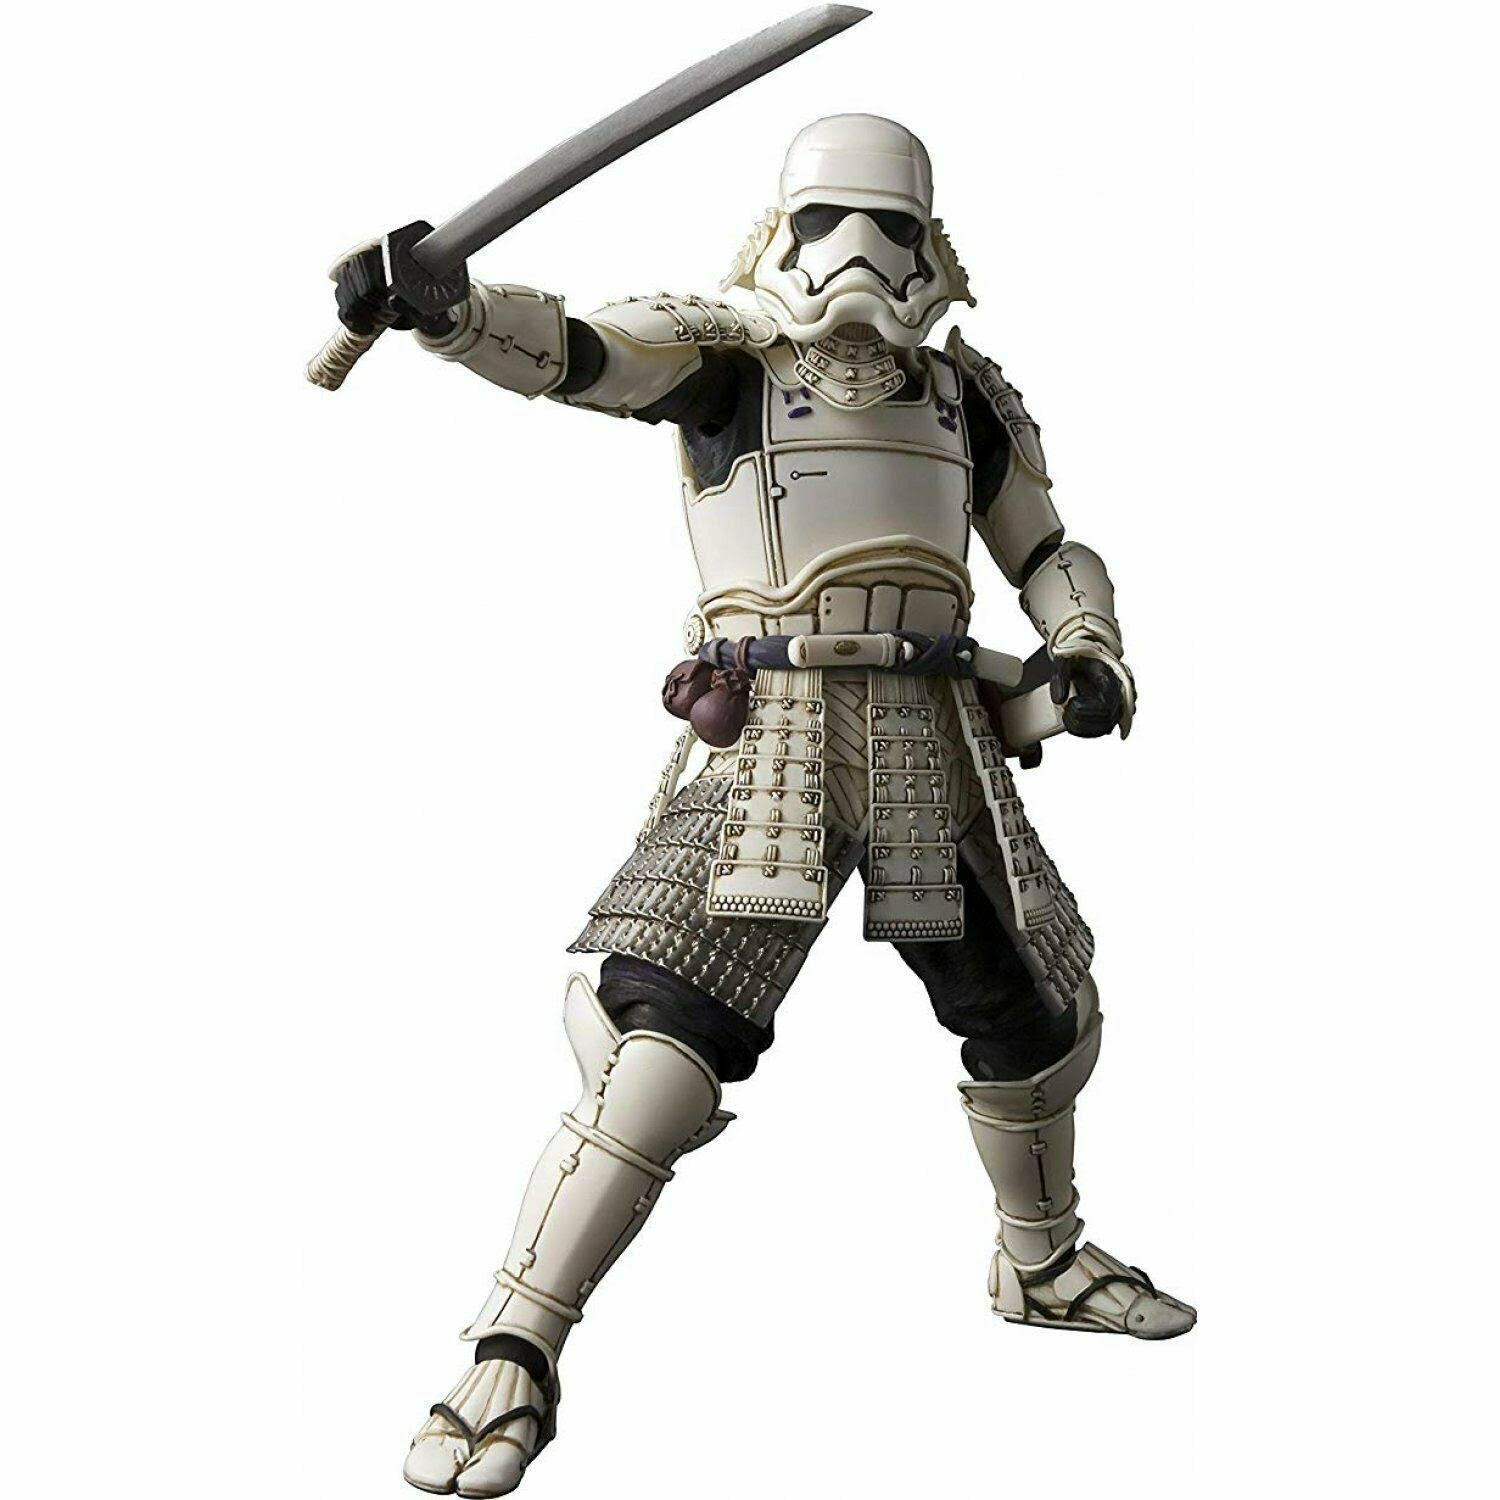 Star Wars Ashigaru First Order Storm Trooper, Meisho Movie Realization